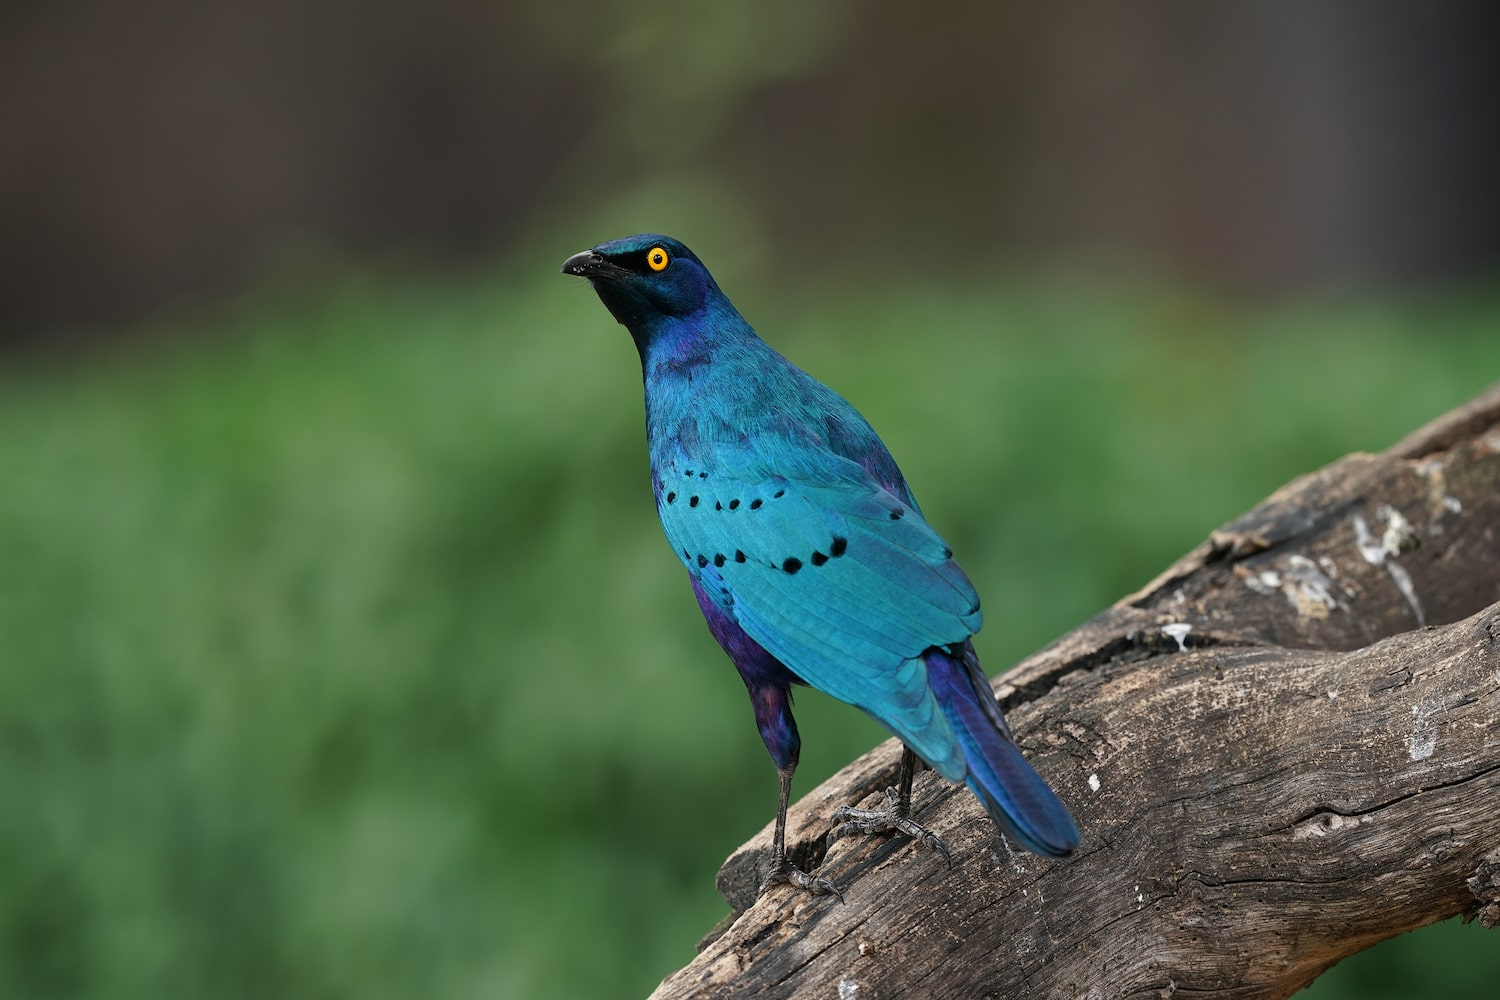 bright-blue-bird-perched-alpha-9